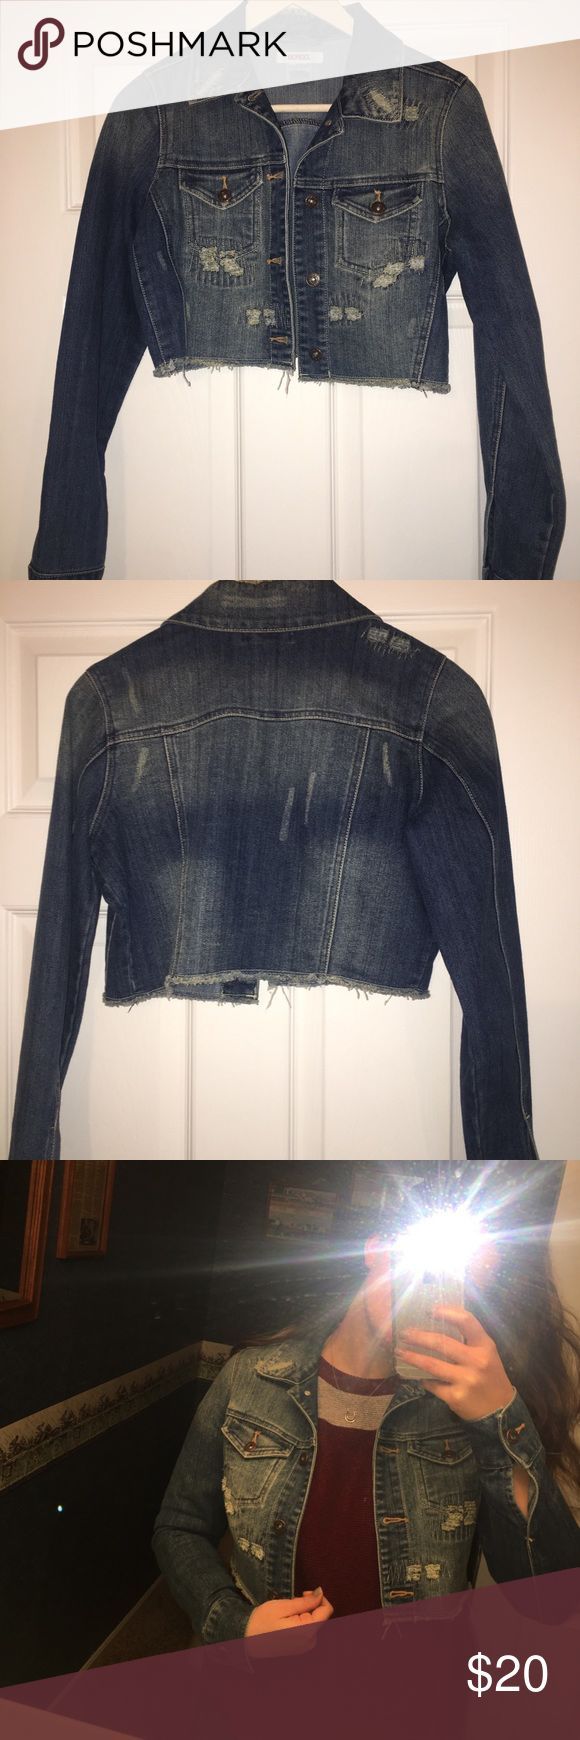 Cropped Jean Jacket 💙 Denim is in ladies 💙💙 This cropped denim jacket is perfect for this summer ☀️ Last 2 pics are some inspiration. Ps check the prices on similar jackets in the last pic!!! This is a steal 💸  Non smoking home 🚭 Make me an offer 💸 Take advantage of my bundle discount BONGO Jackets & Coats Jean Jackets